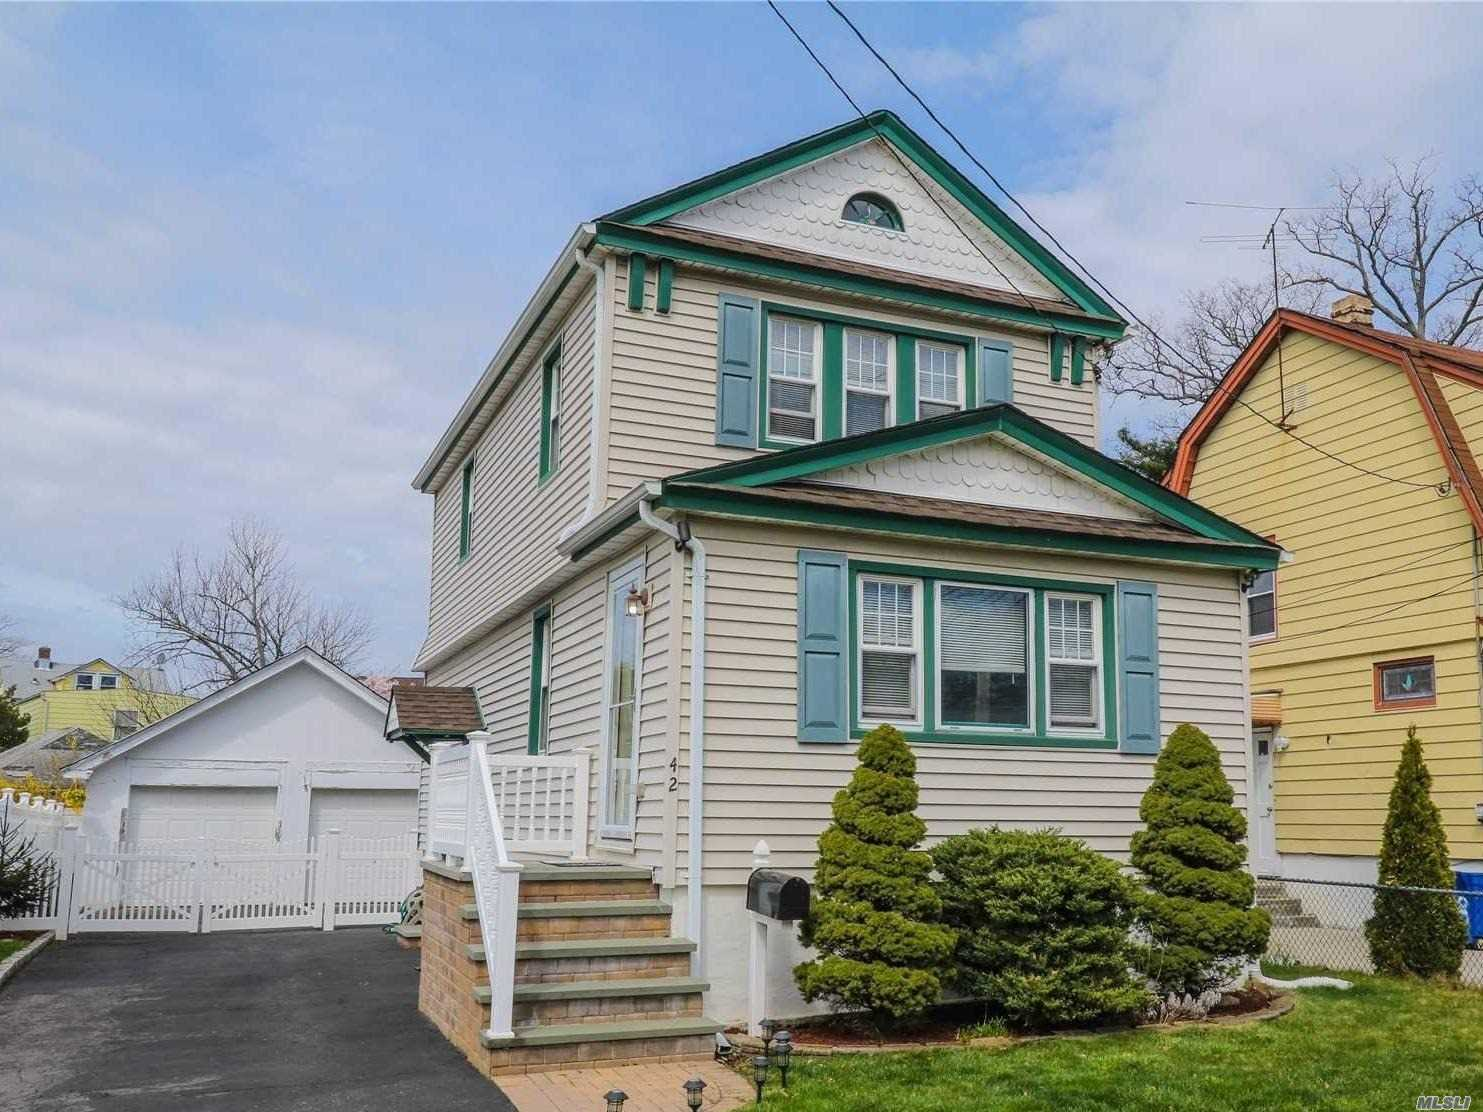 Charming 3-Bedroom Colonial Style House Offers Large Living Room, Formal Dining Room, Hardwood Floors, Full Basement With Outside Entrance, 2-Car Garage, Beautiful Patio With All New Fence, 5-Year Old Roof, Boiler and Water Tank. Close To Train Station (5 Min Walk), Restaurants, Stores. Low Taxes!